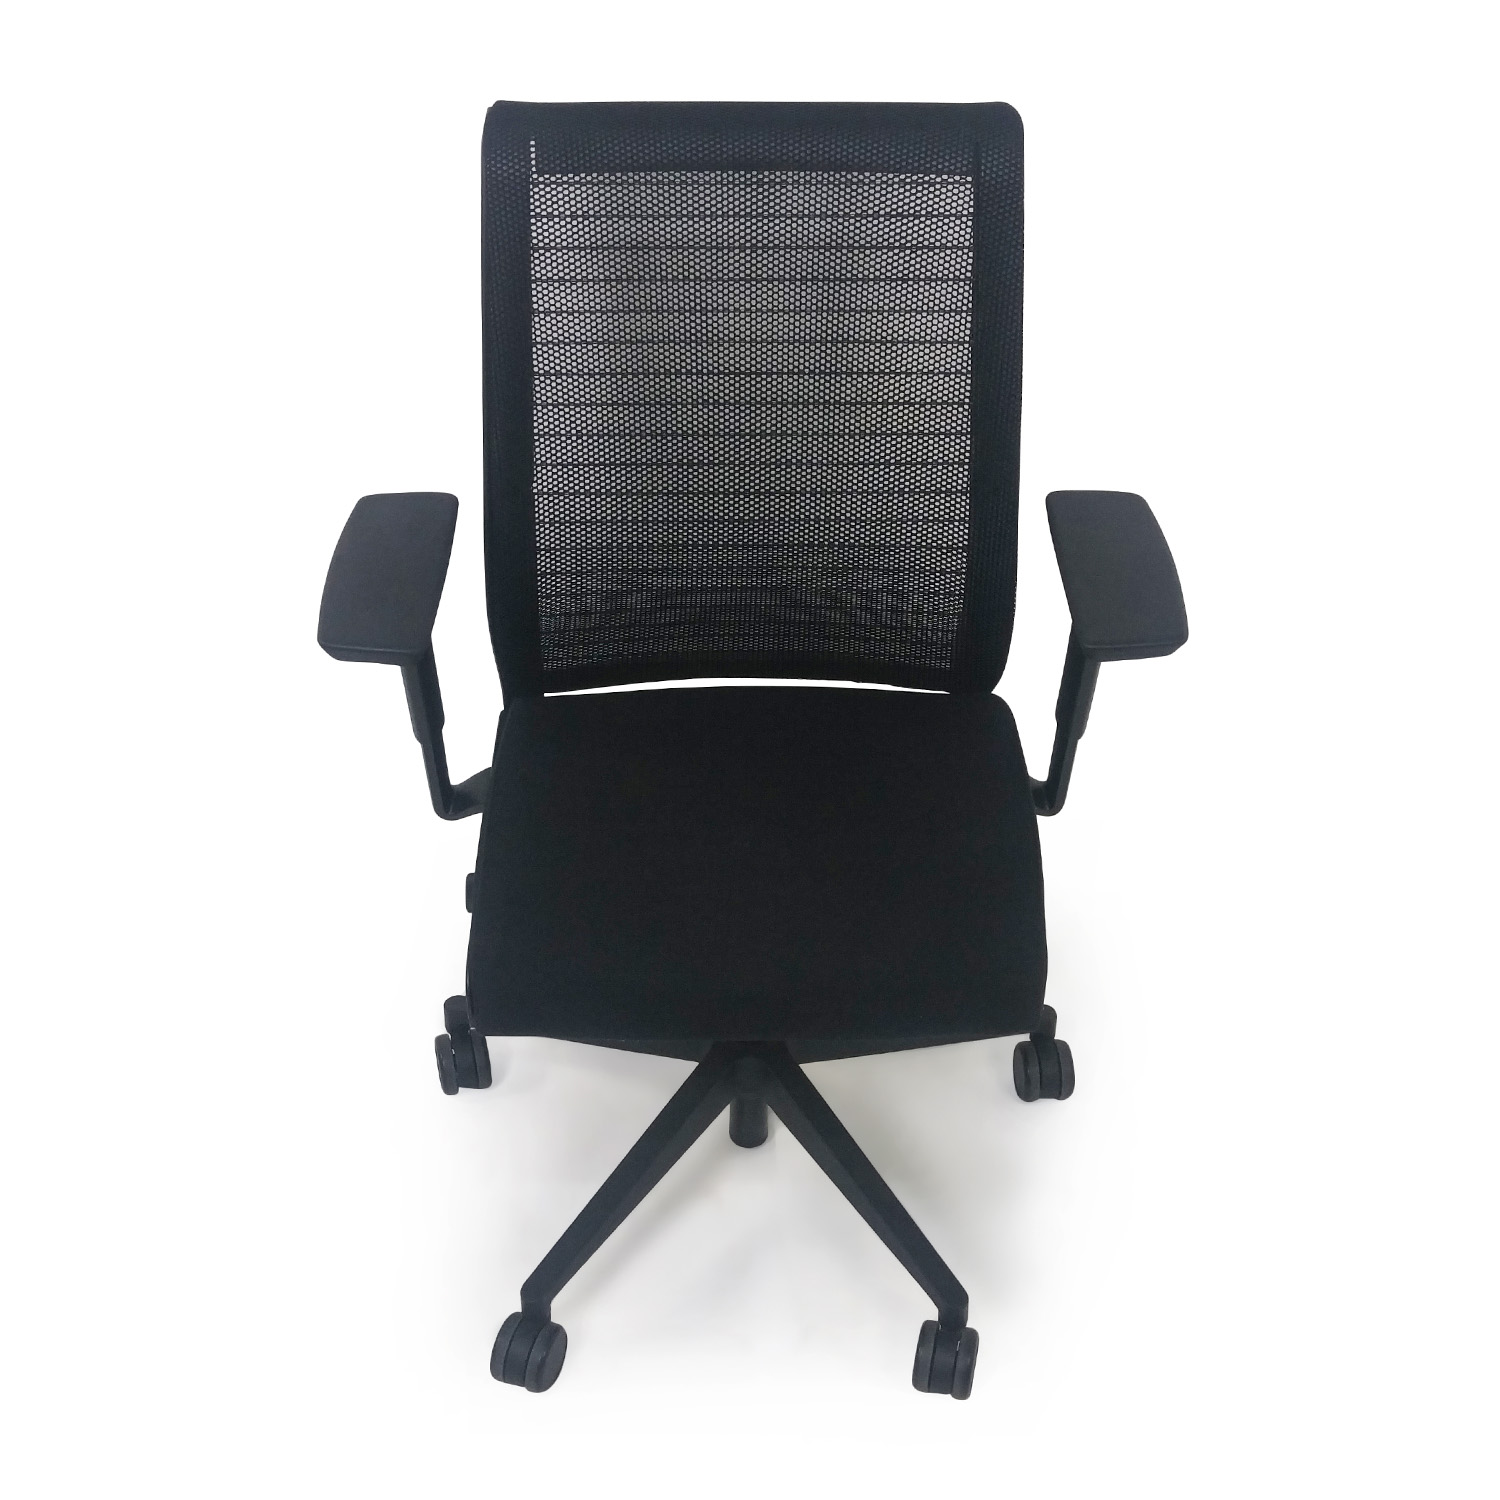 56% OFF Black Leather and Wood Chairs Chairs